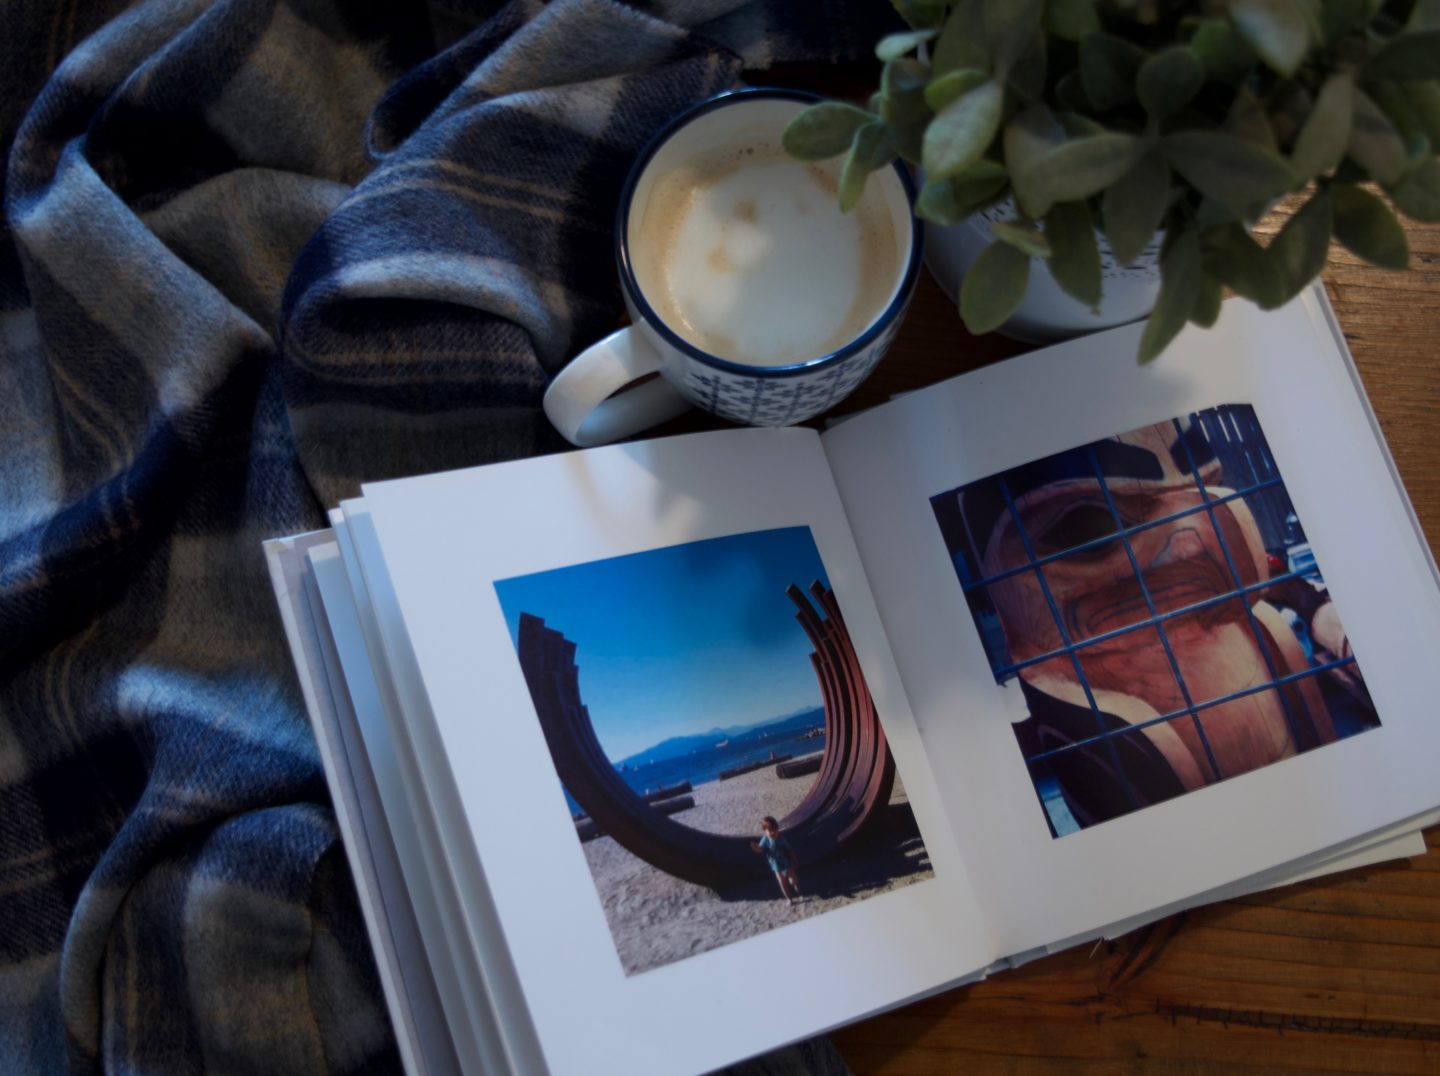 One of my many travel photo books... my son loves looking at them. And yes, that's my cozy Tartan Blanket Co. scarf there too